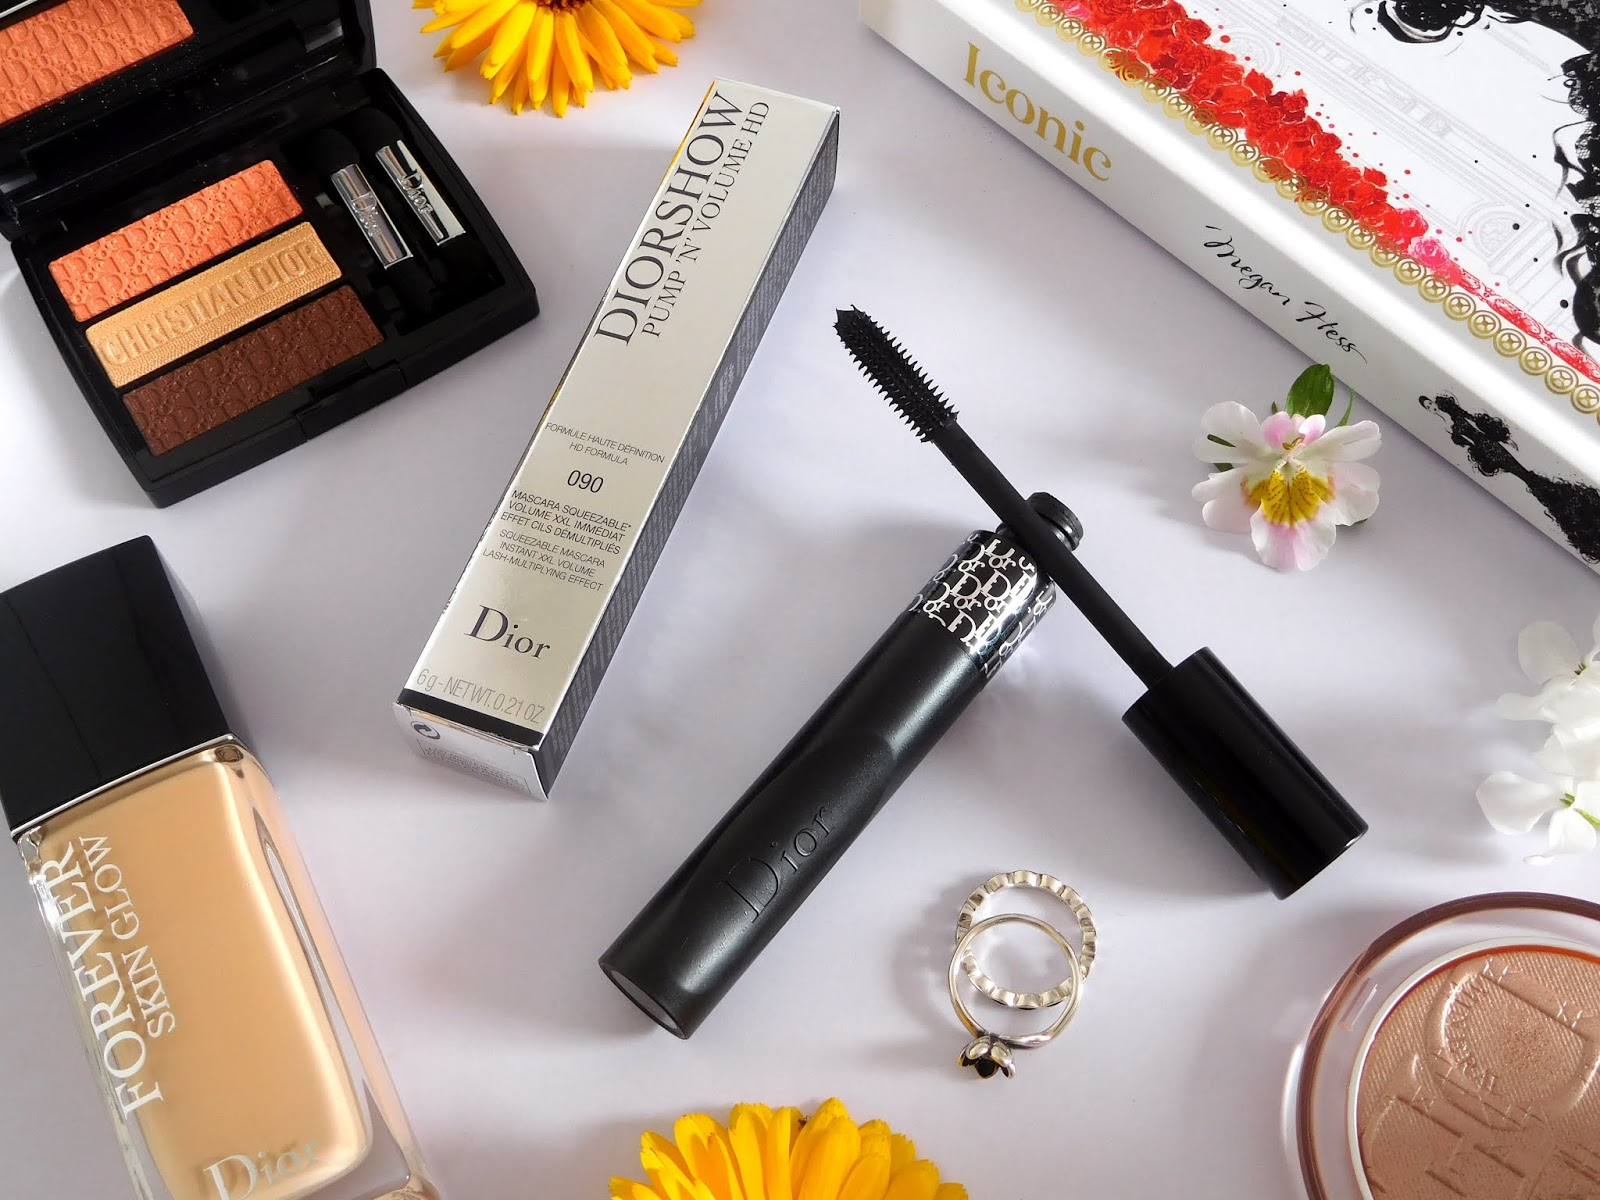 0fc7f9b5cf2 I have done a review on the 3 Couleurs Tri(o)blique Eyeshadow Palette in  653 Coral Canvas, which you can find here. The first squeezable mascara by  Dior ...